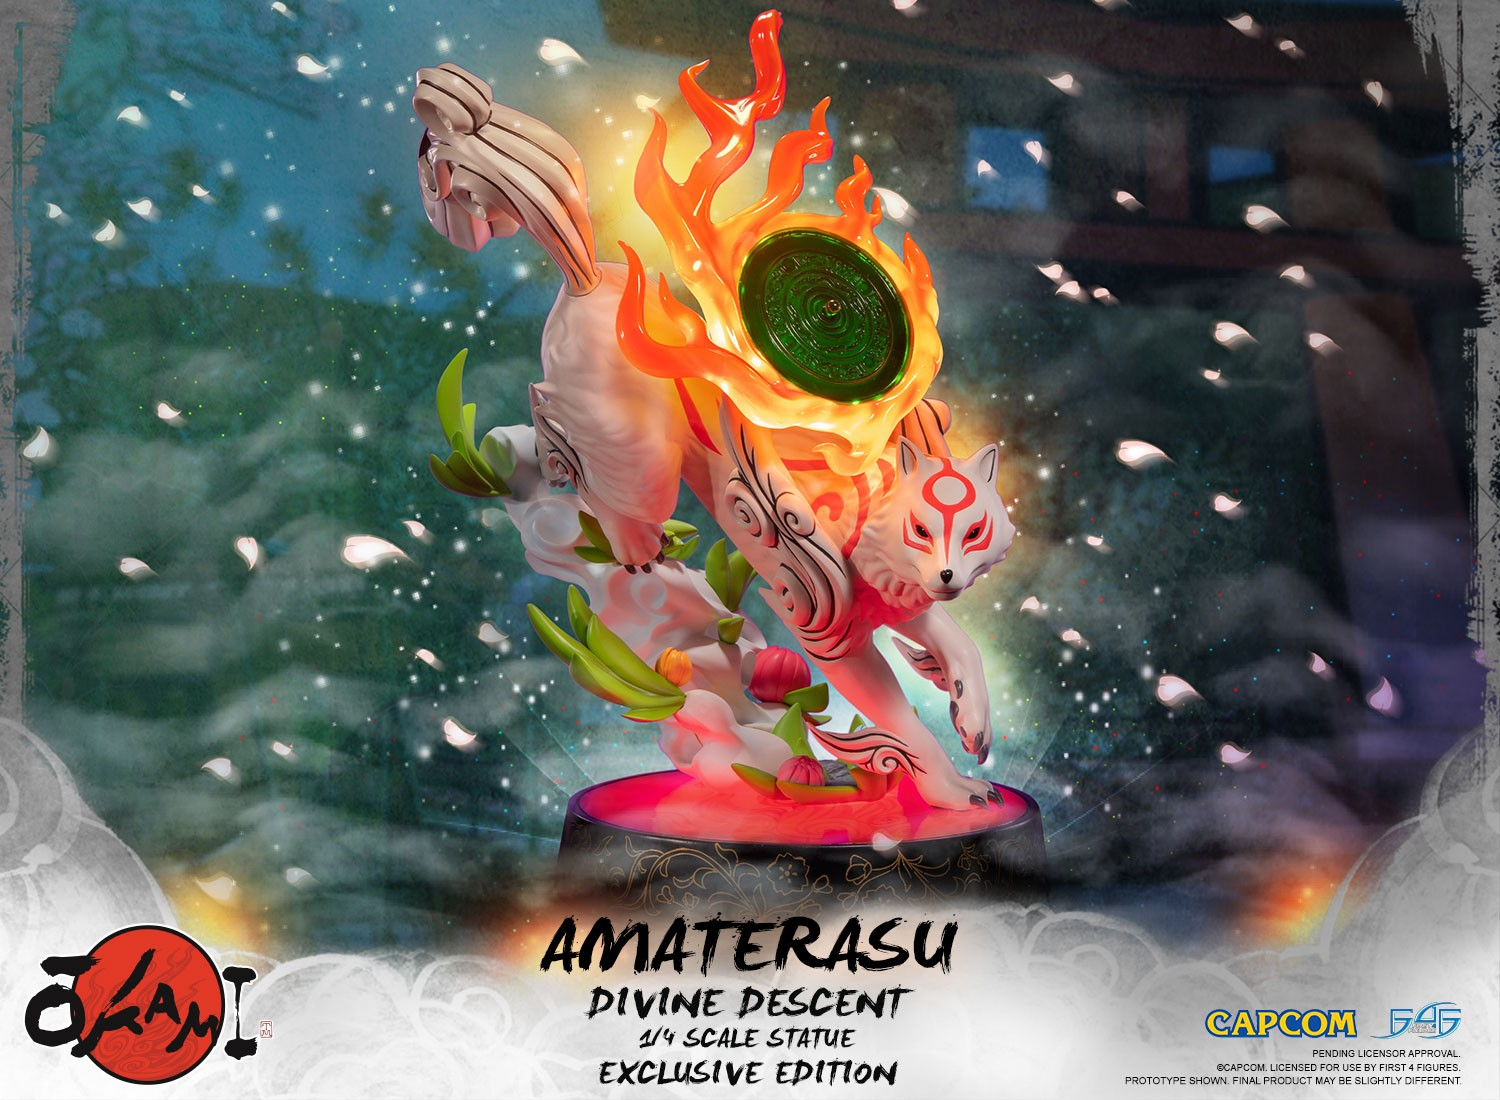 Okami - Amaterasu: Divine Descent (Exclusive Edition)